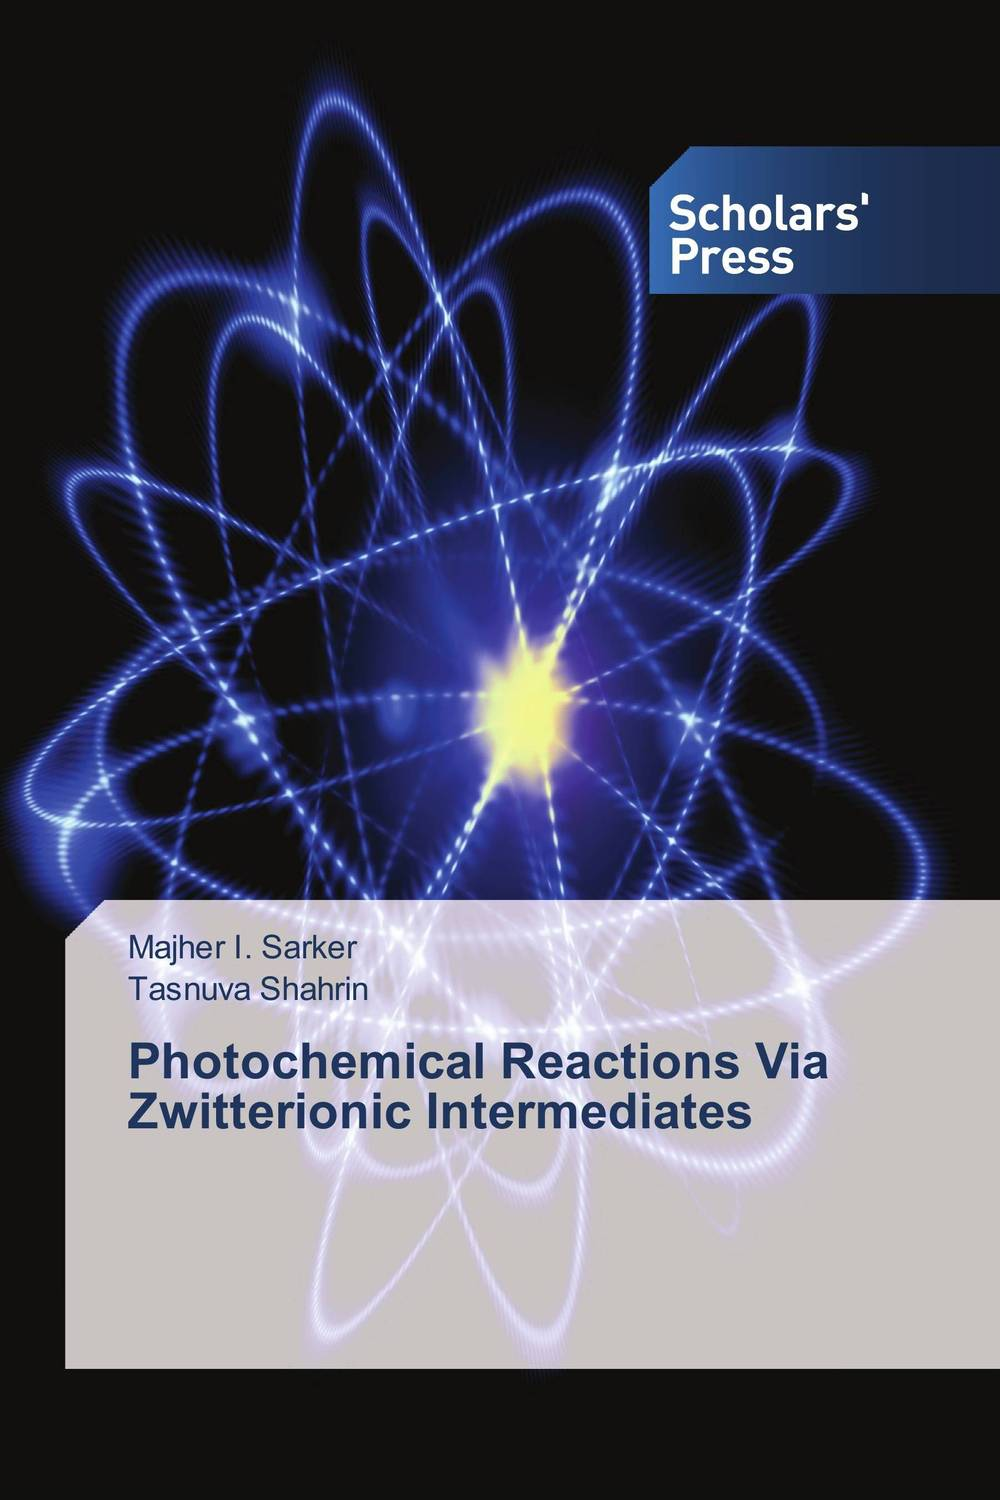 Photochemical Reactions Via Zwitterionic Intermediates